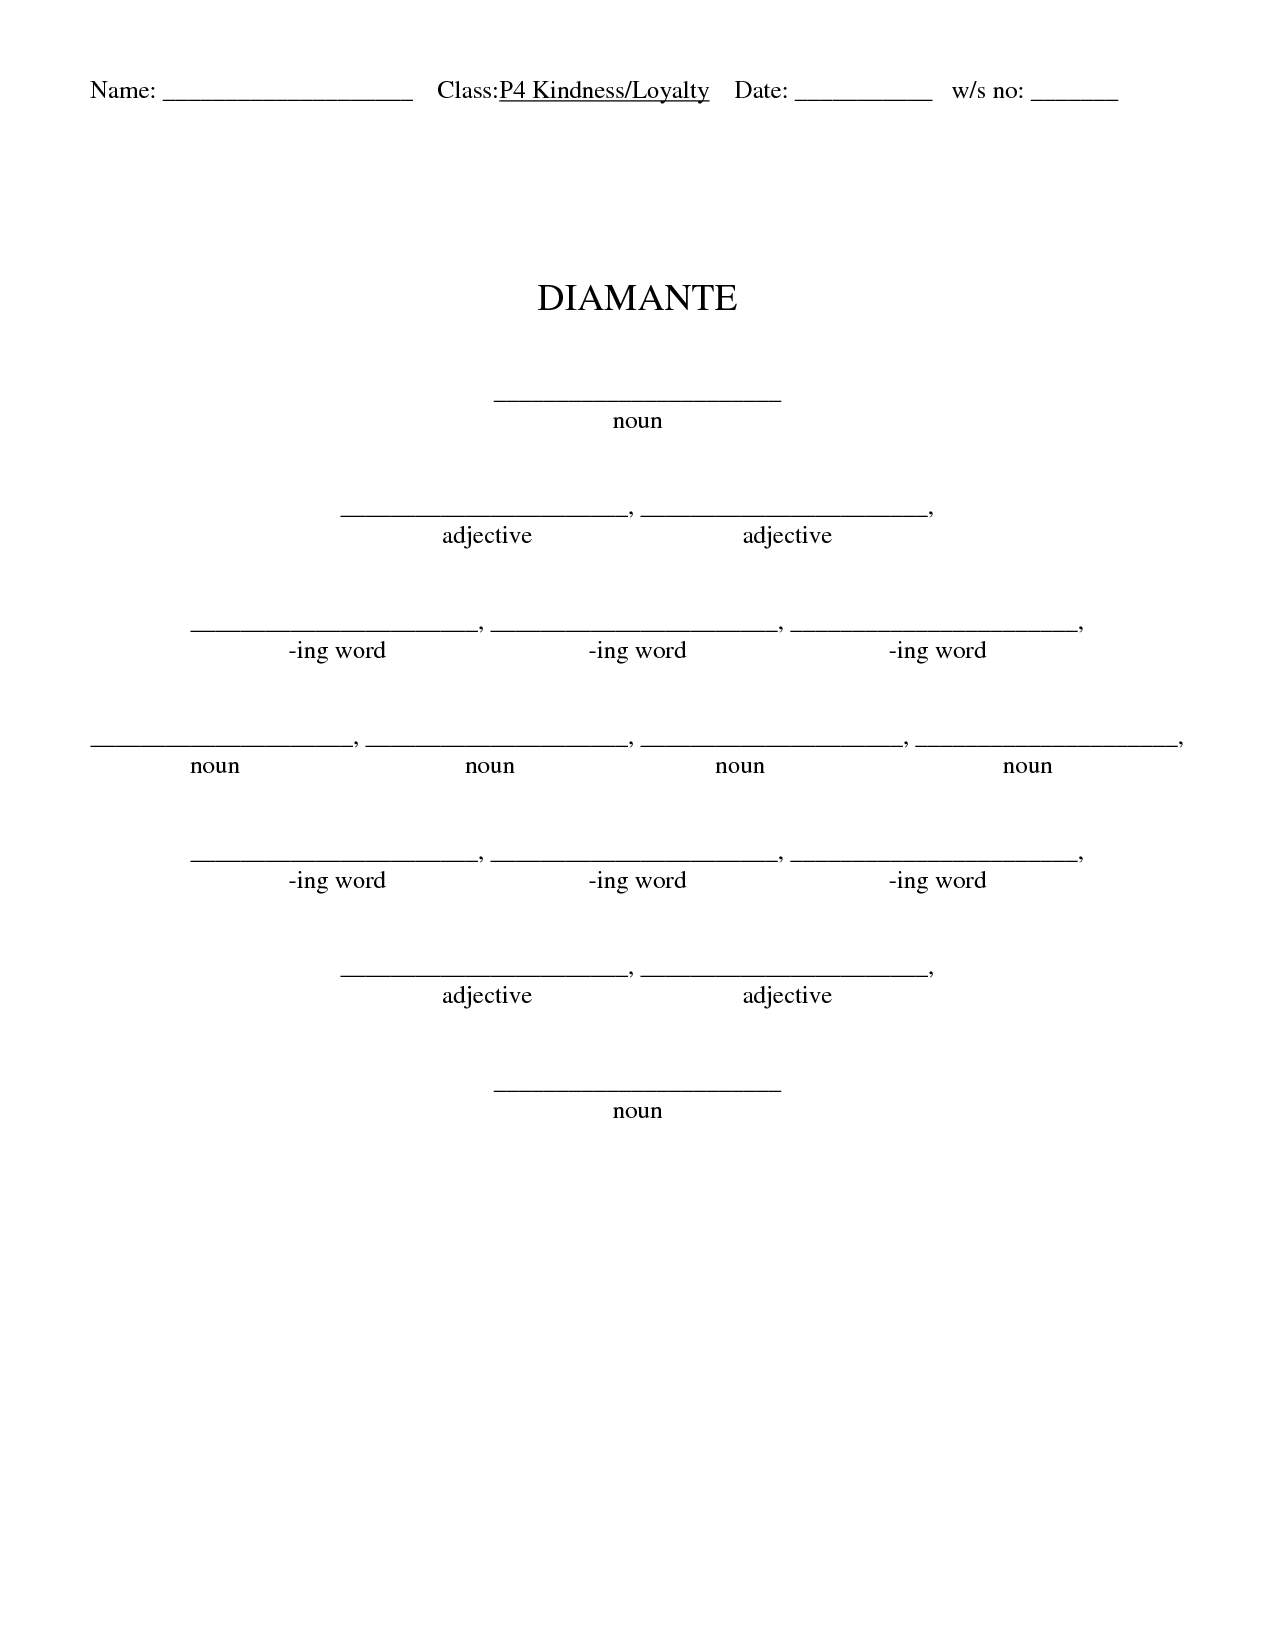 Search Results For Blank Diamante Poem Calendar